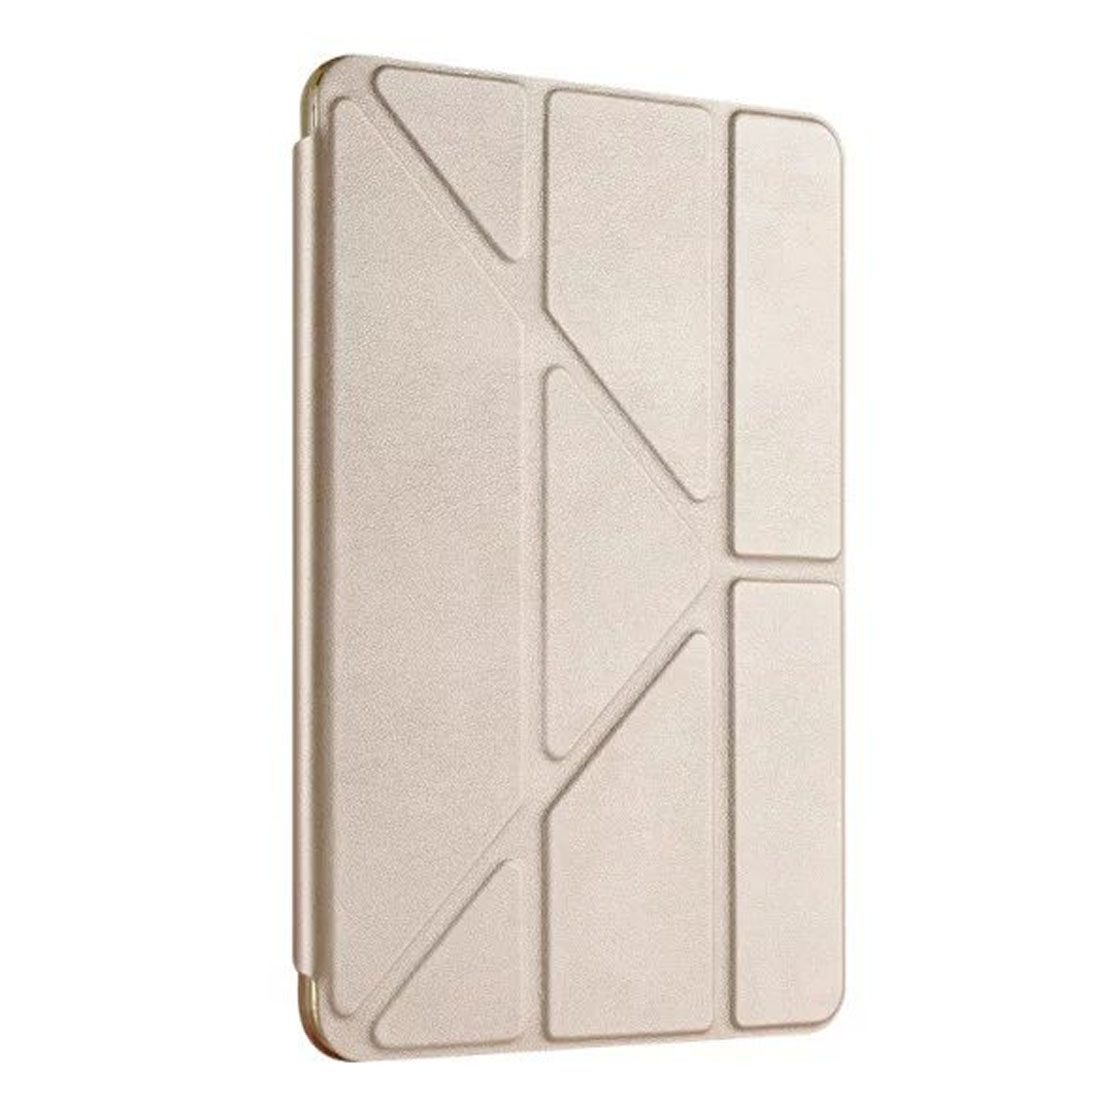 Etmakit  Ultra Thin Stand Design TPU Soft case For ipad mini 3 2 1 Cover Colorful Flip Smart Cover Smart Table Case cover nice clear flexible tpu silicone bottom back case for apple ipad mini 1 2 3 case smart cover partner thin transperent